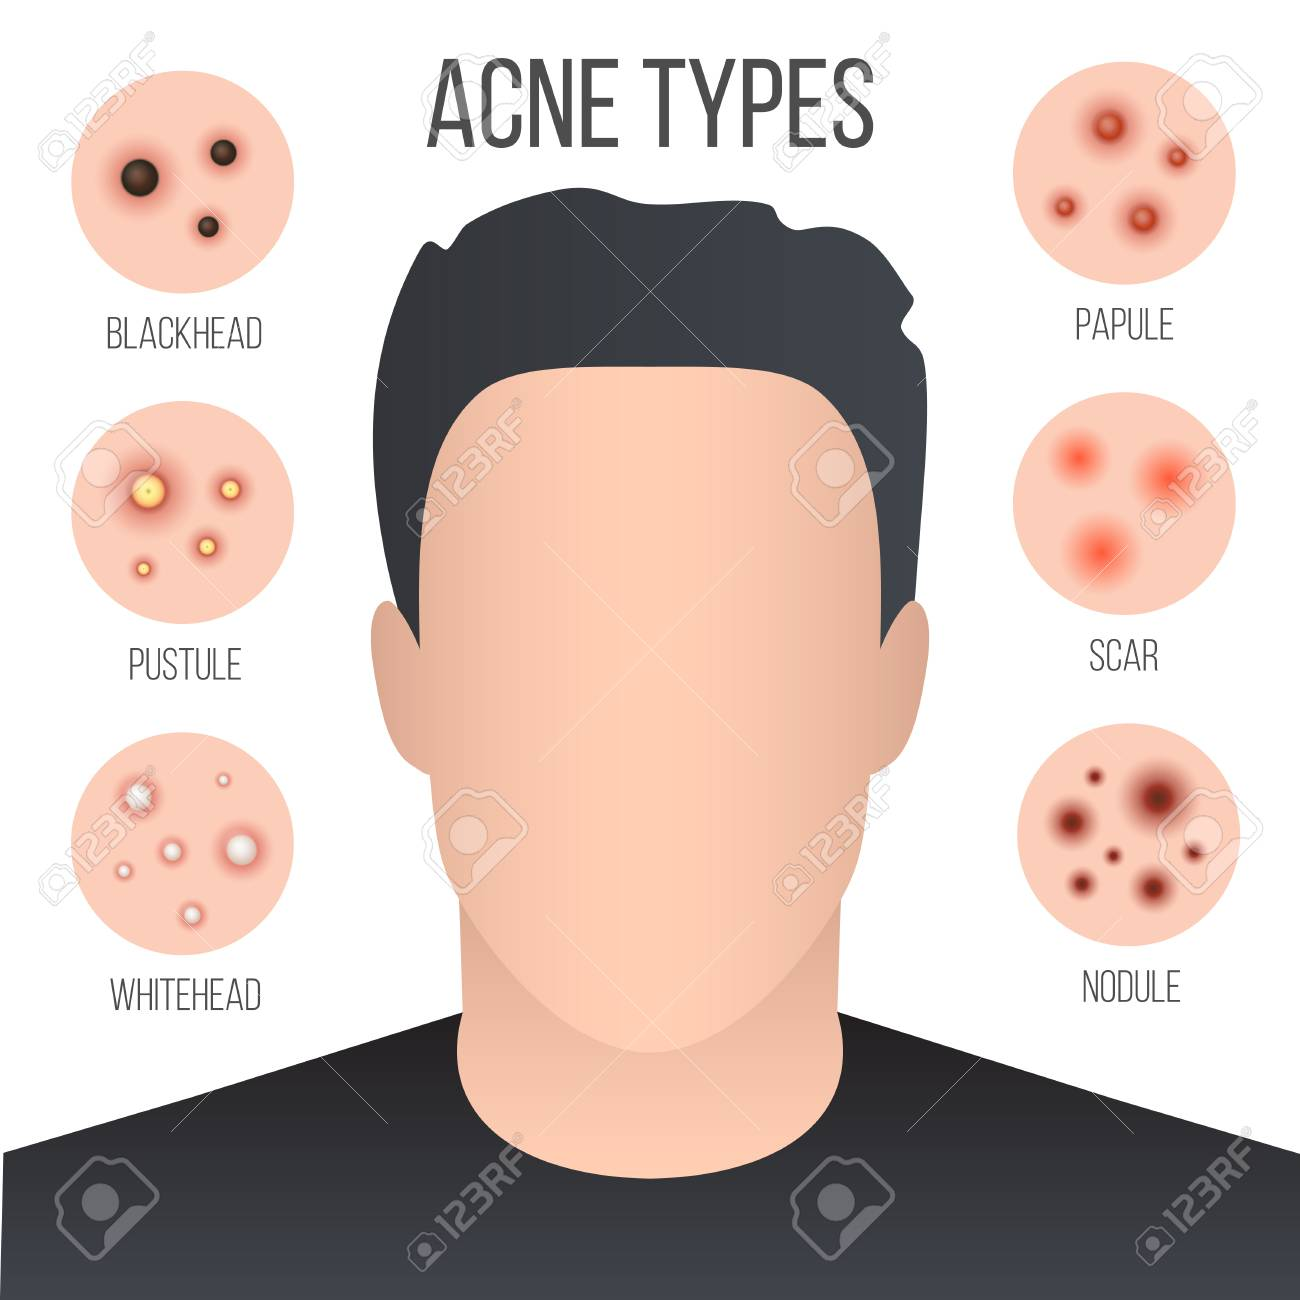 hight resolution of creative illustration types of acne pimples skin pores blackhead whitehead scar